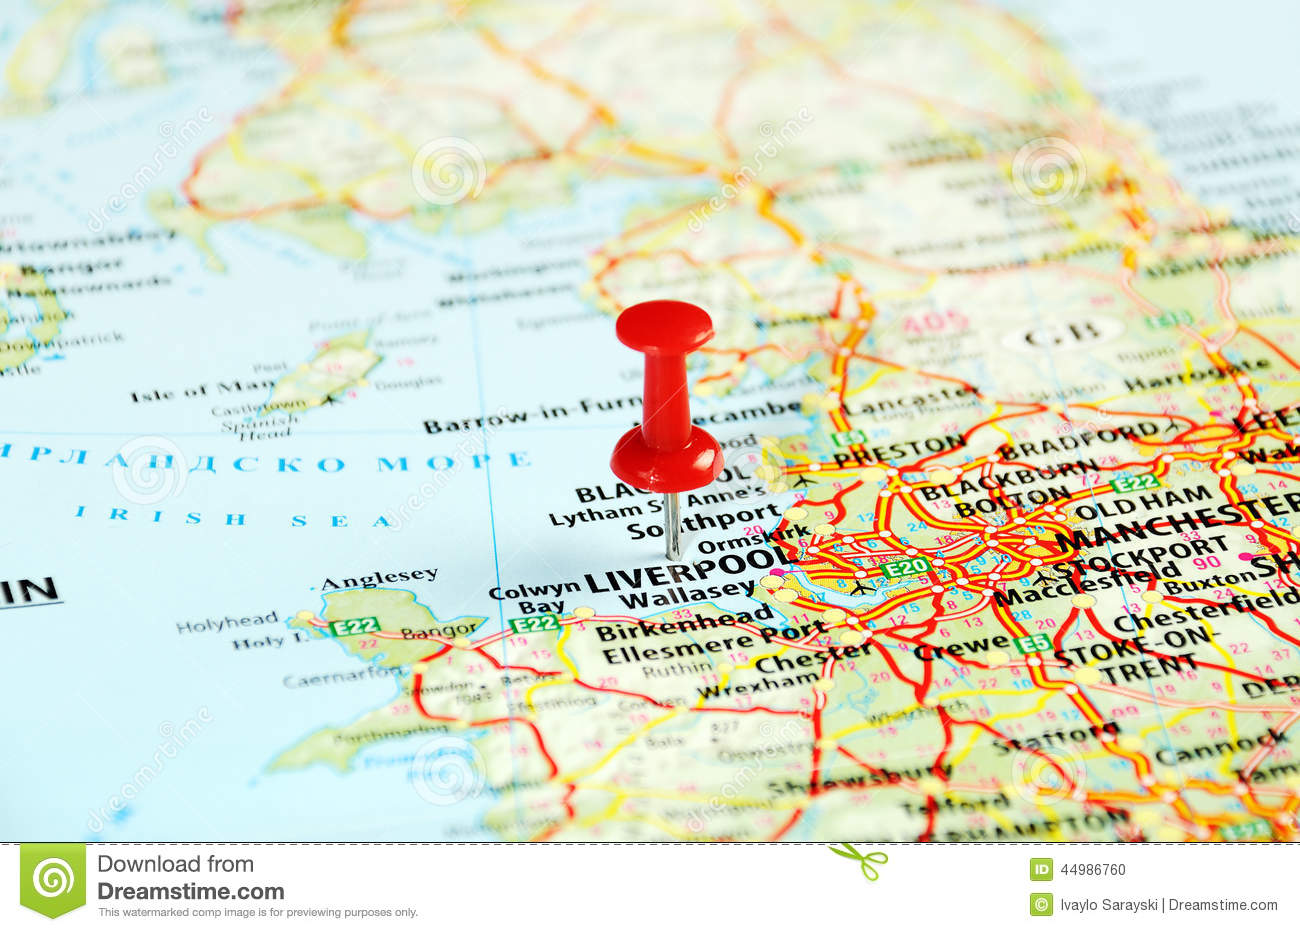 Liverpool Map Of England.Liverpool Uk Map Pin Stock Photo Image Of Atlas Route 44986760